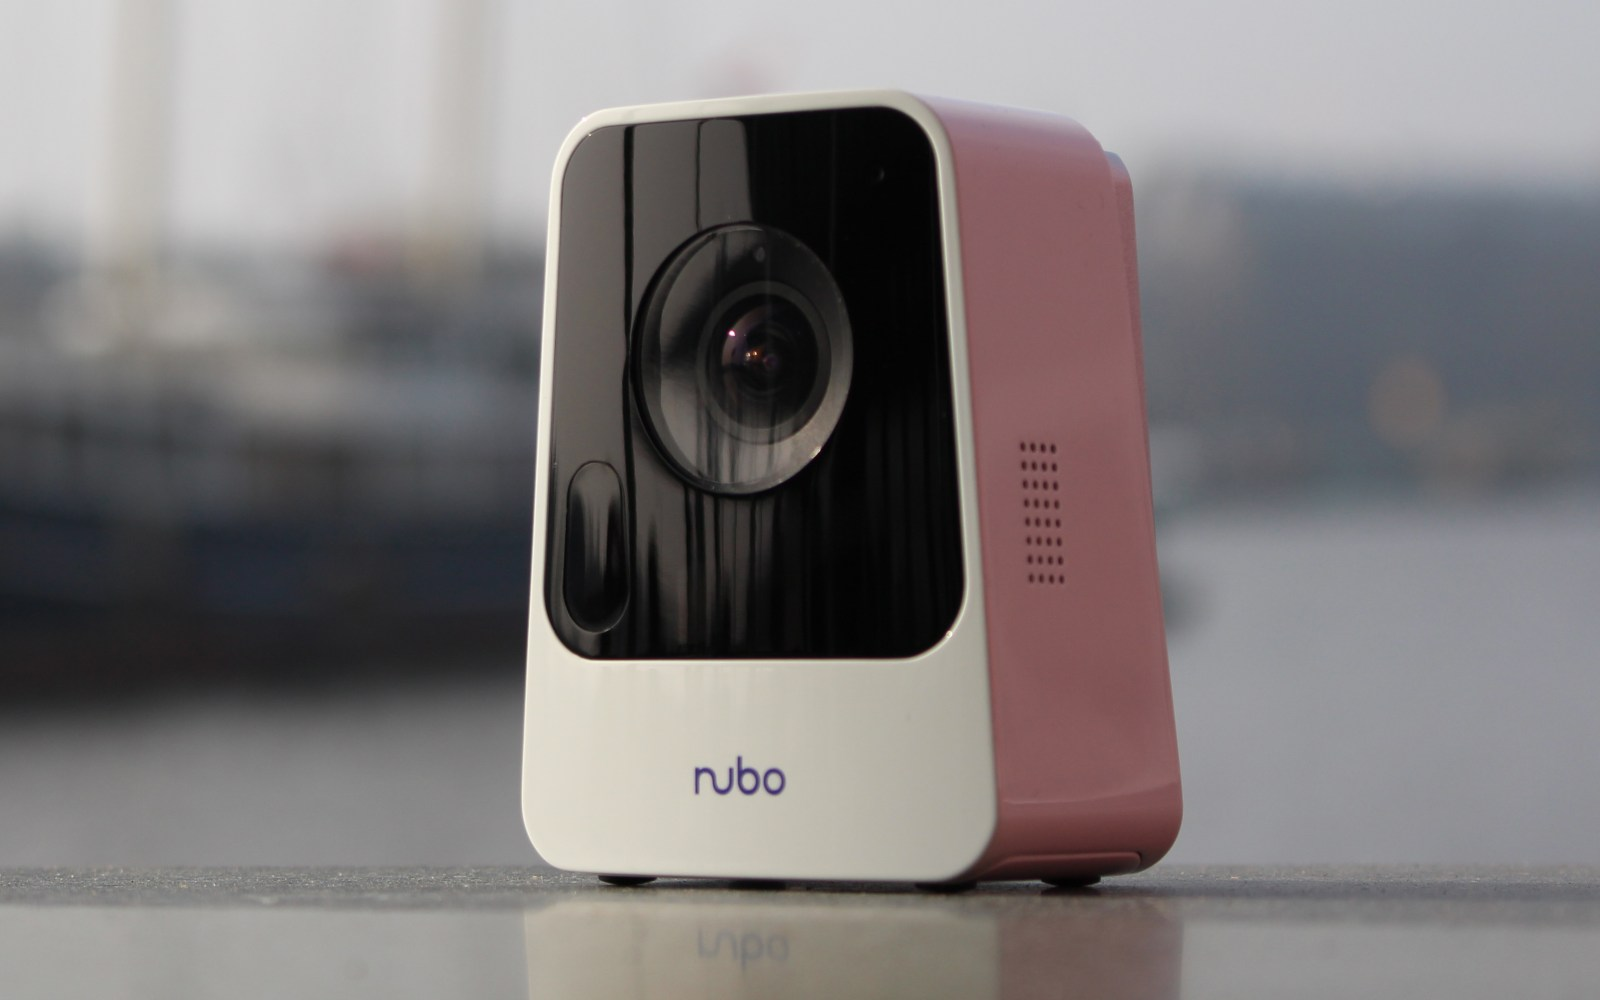 Pansonic's Nubo weatherproof, 4G-equipped monitoring camera is poised to slay Dropcam